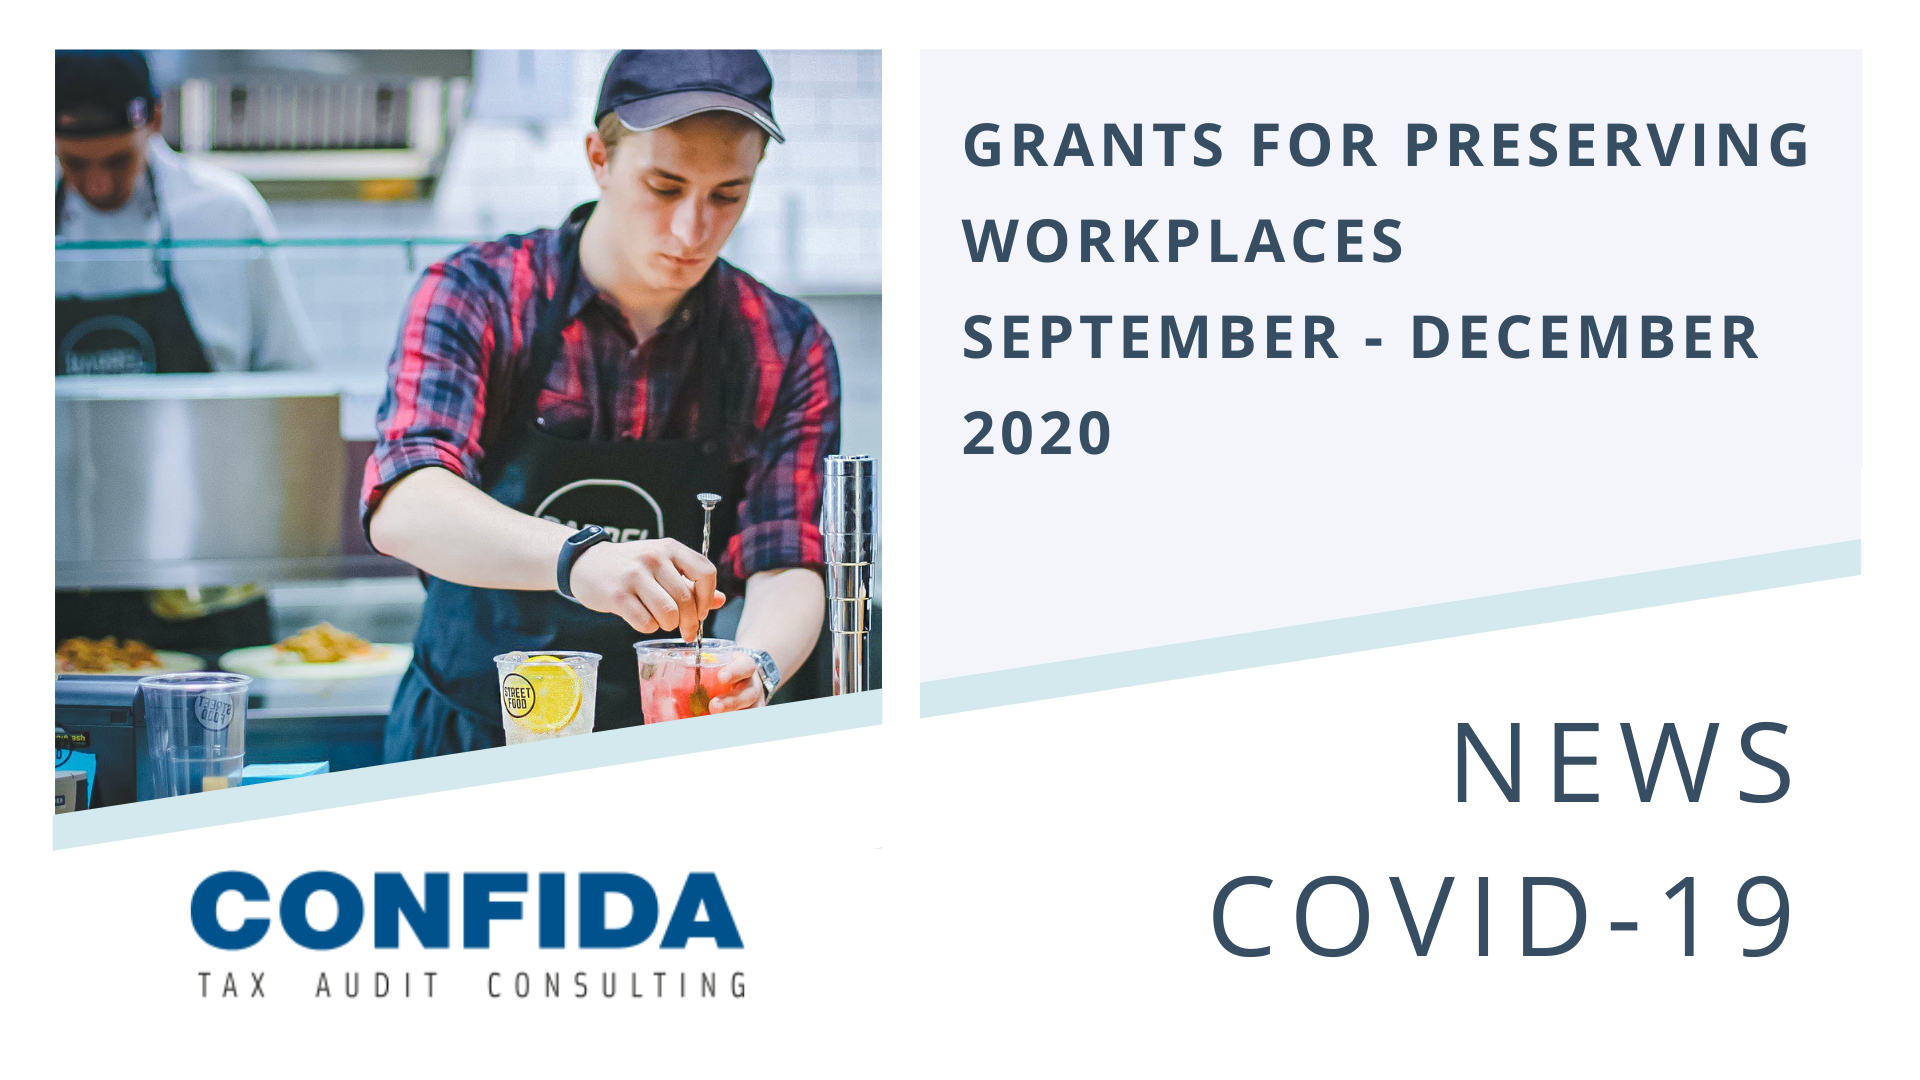 Grants for preserving workplaces - September - December 202